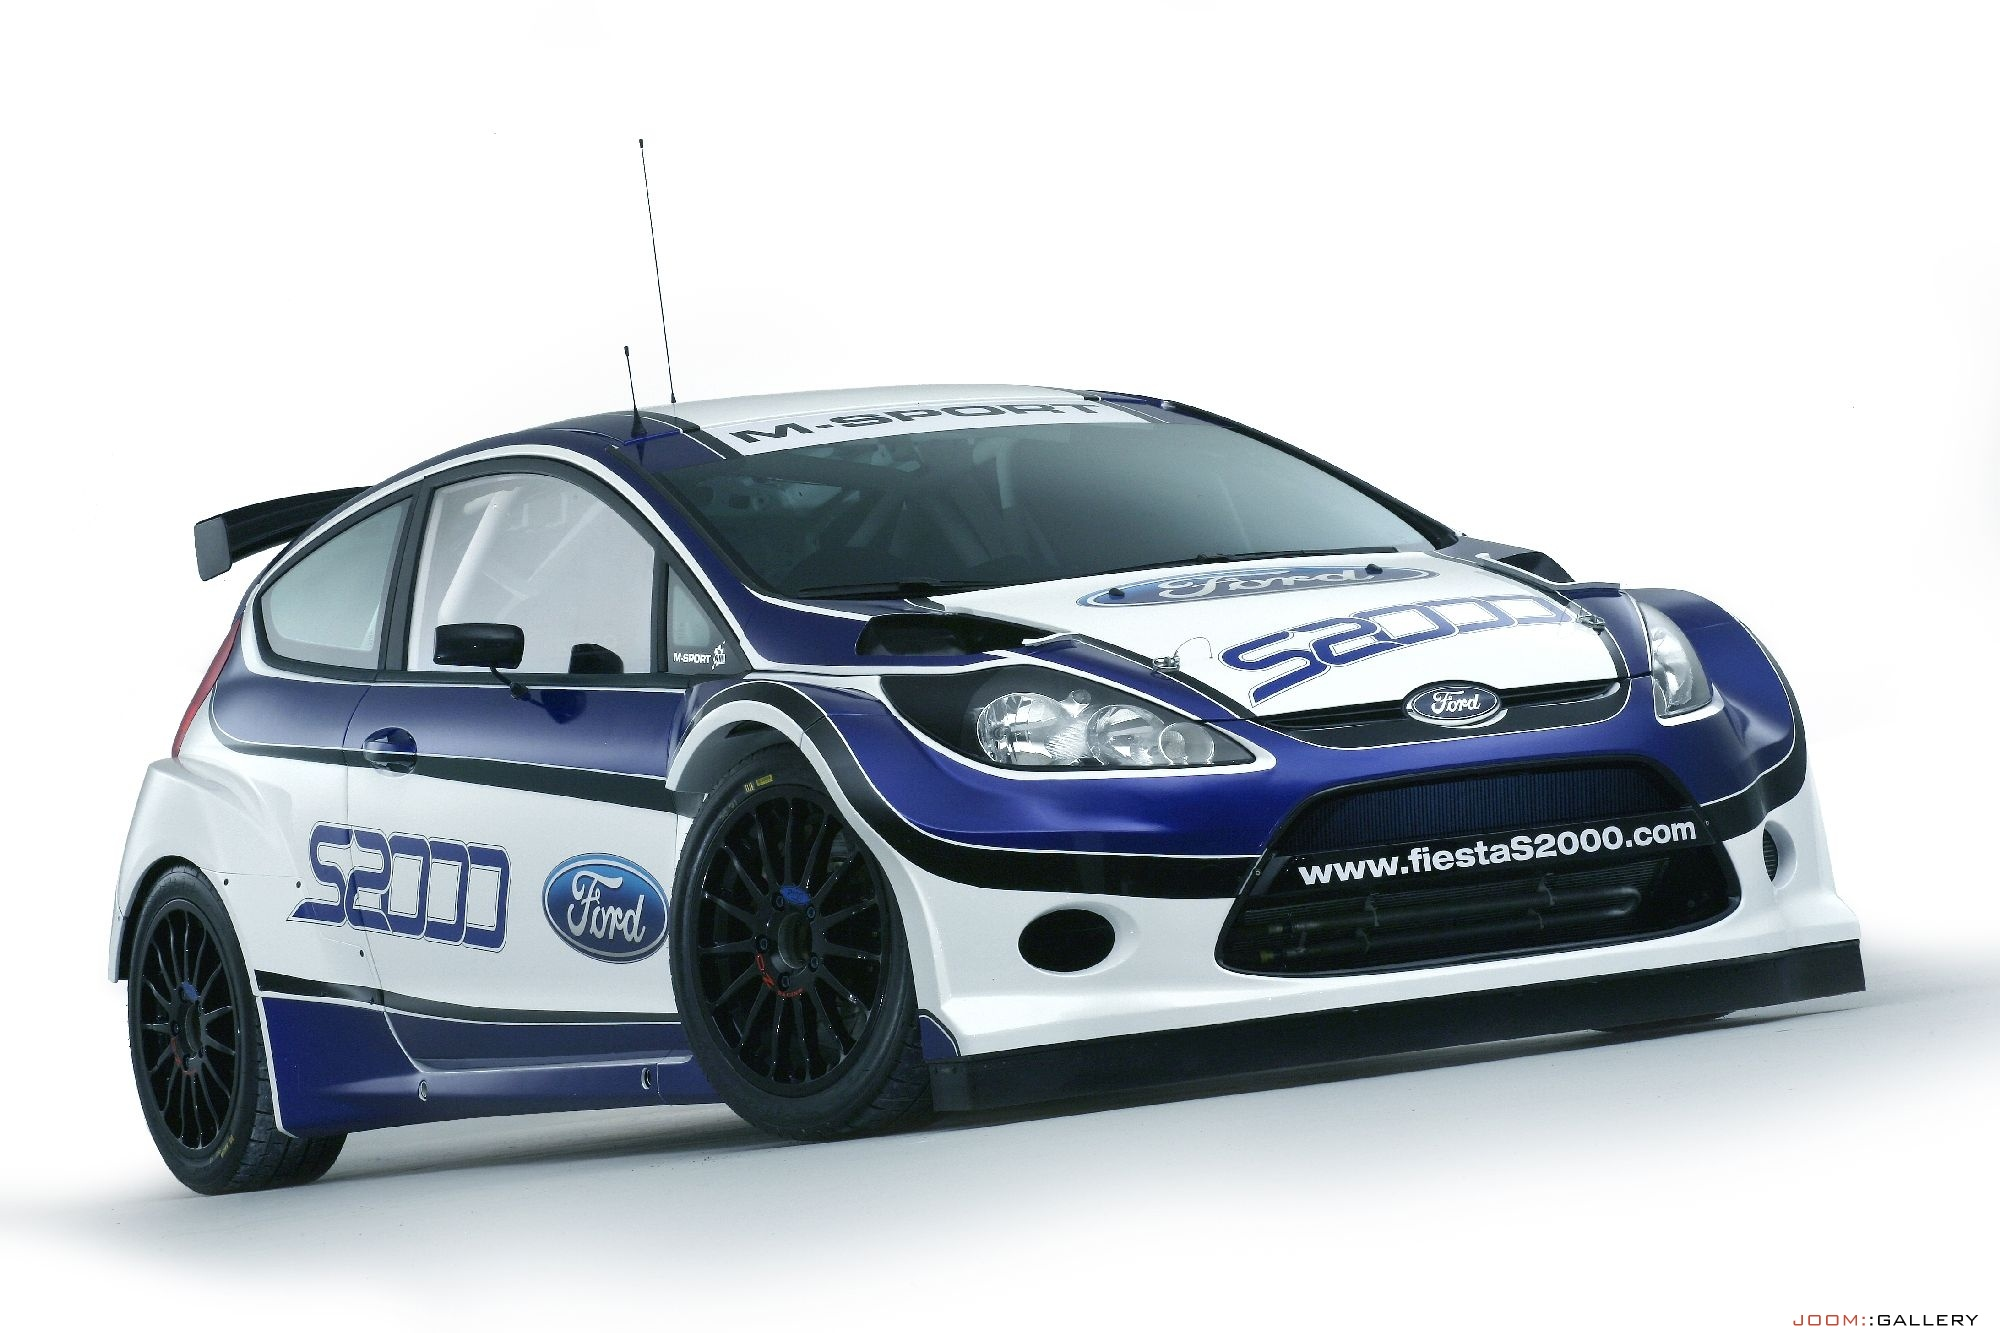 All new Ford Fiesta S2000 rally car unveiled